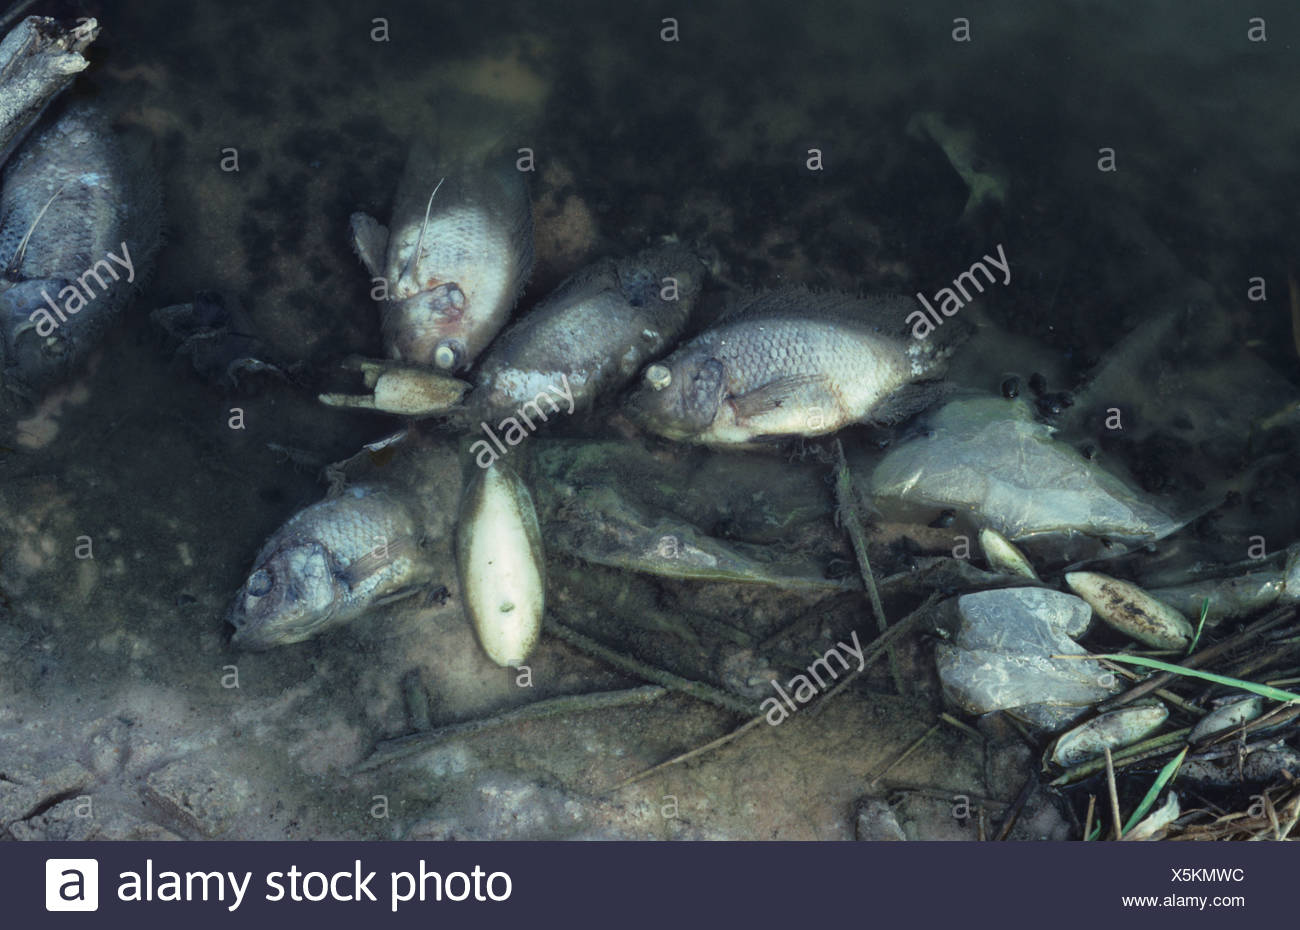 Dead fish at the edge of a polluted lake - Stock Image